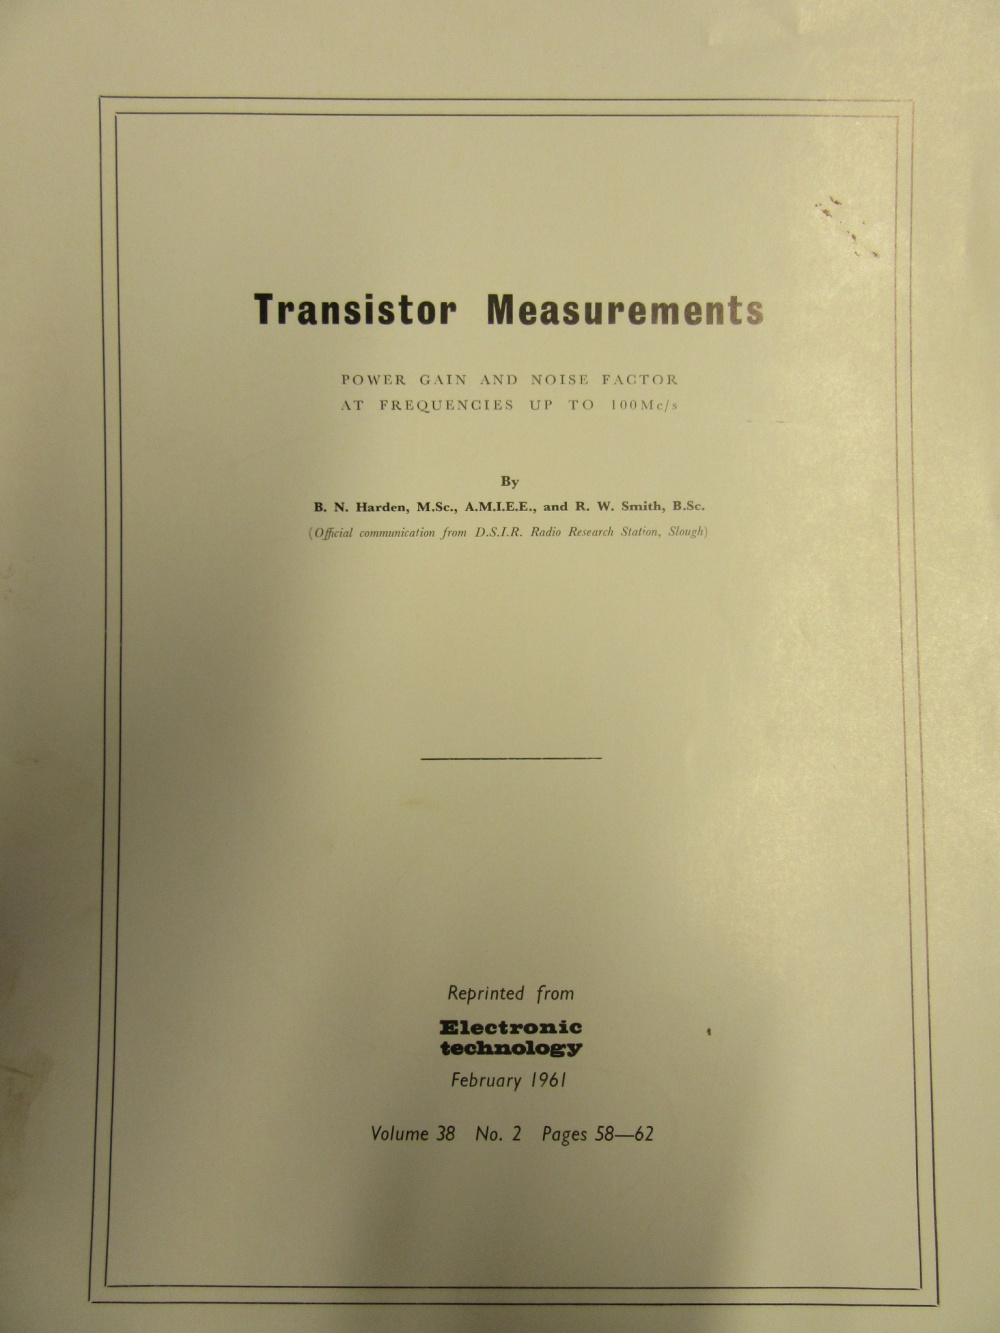 Article: 1950s Transistor Research Papers with Photographs and Author Information